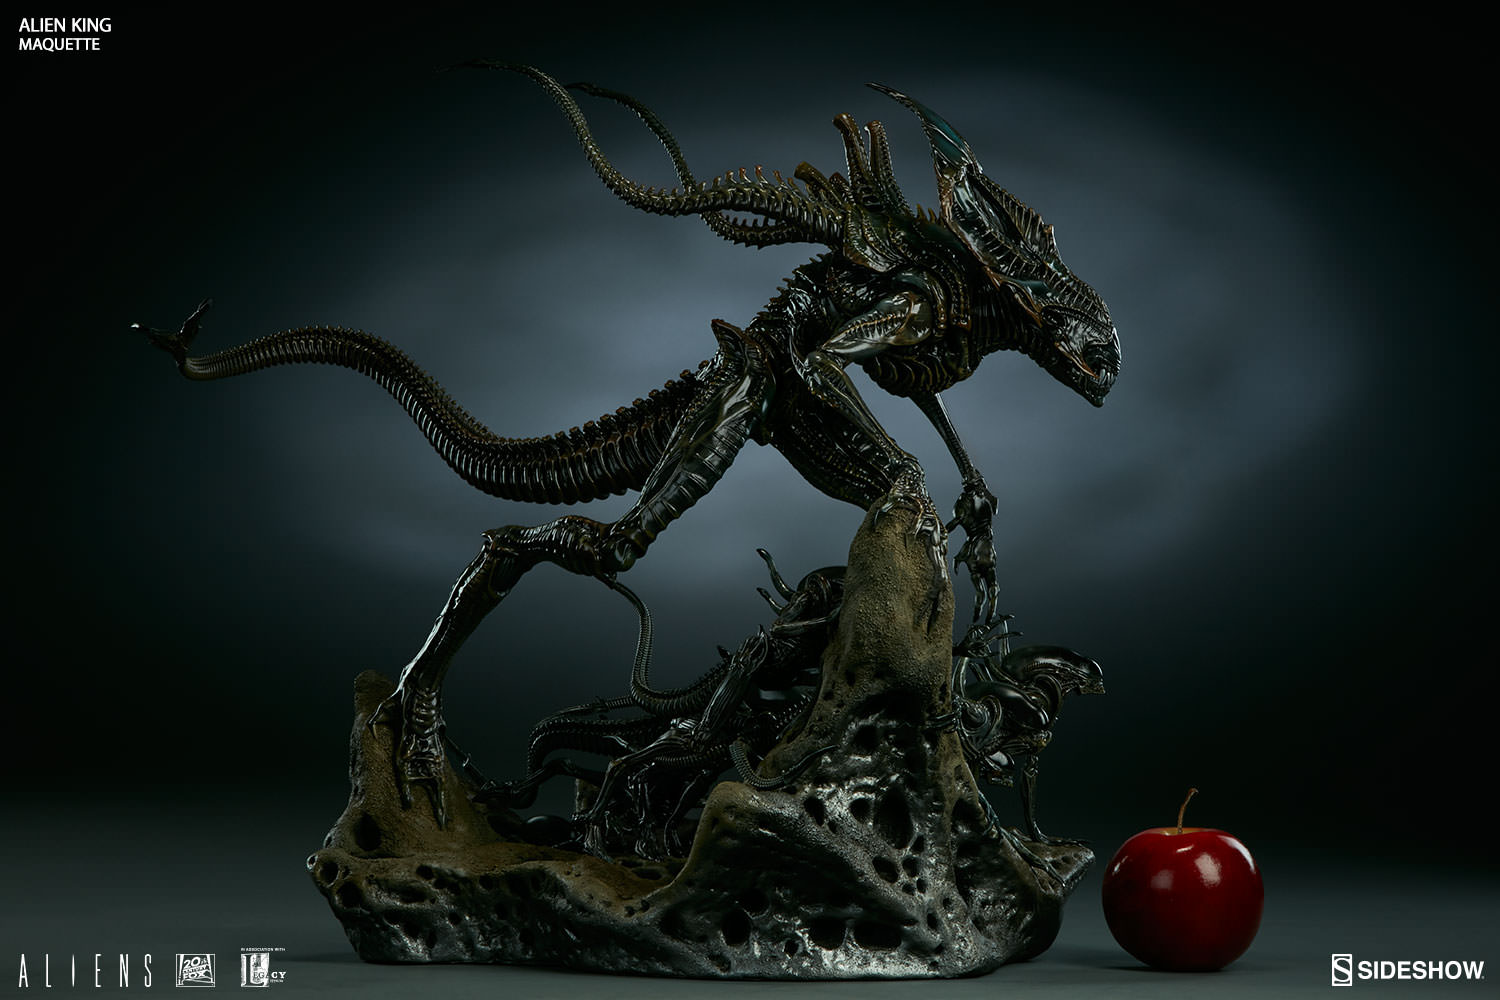 Alien King Maquette Photos and - 148.3KB